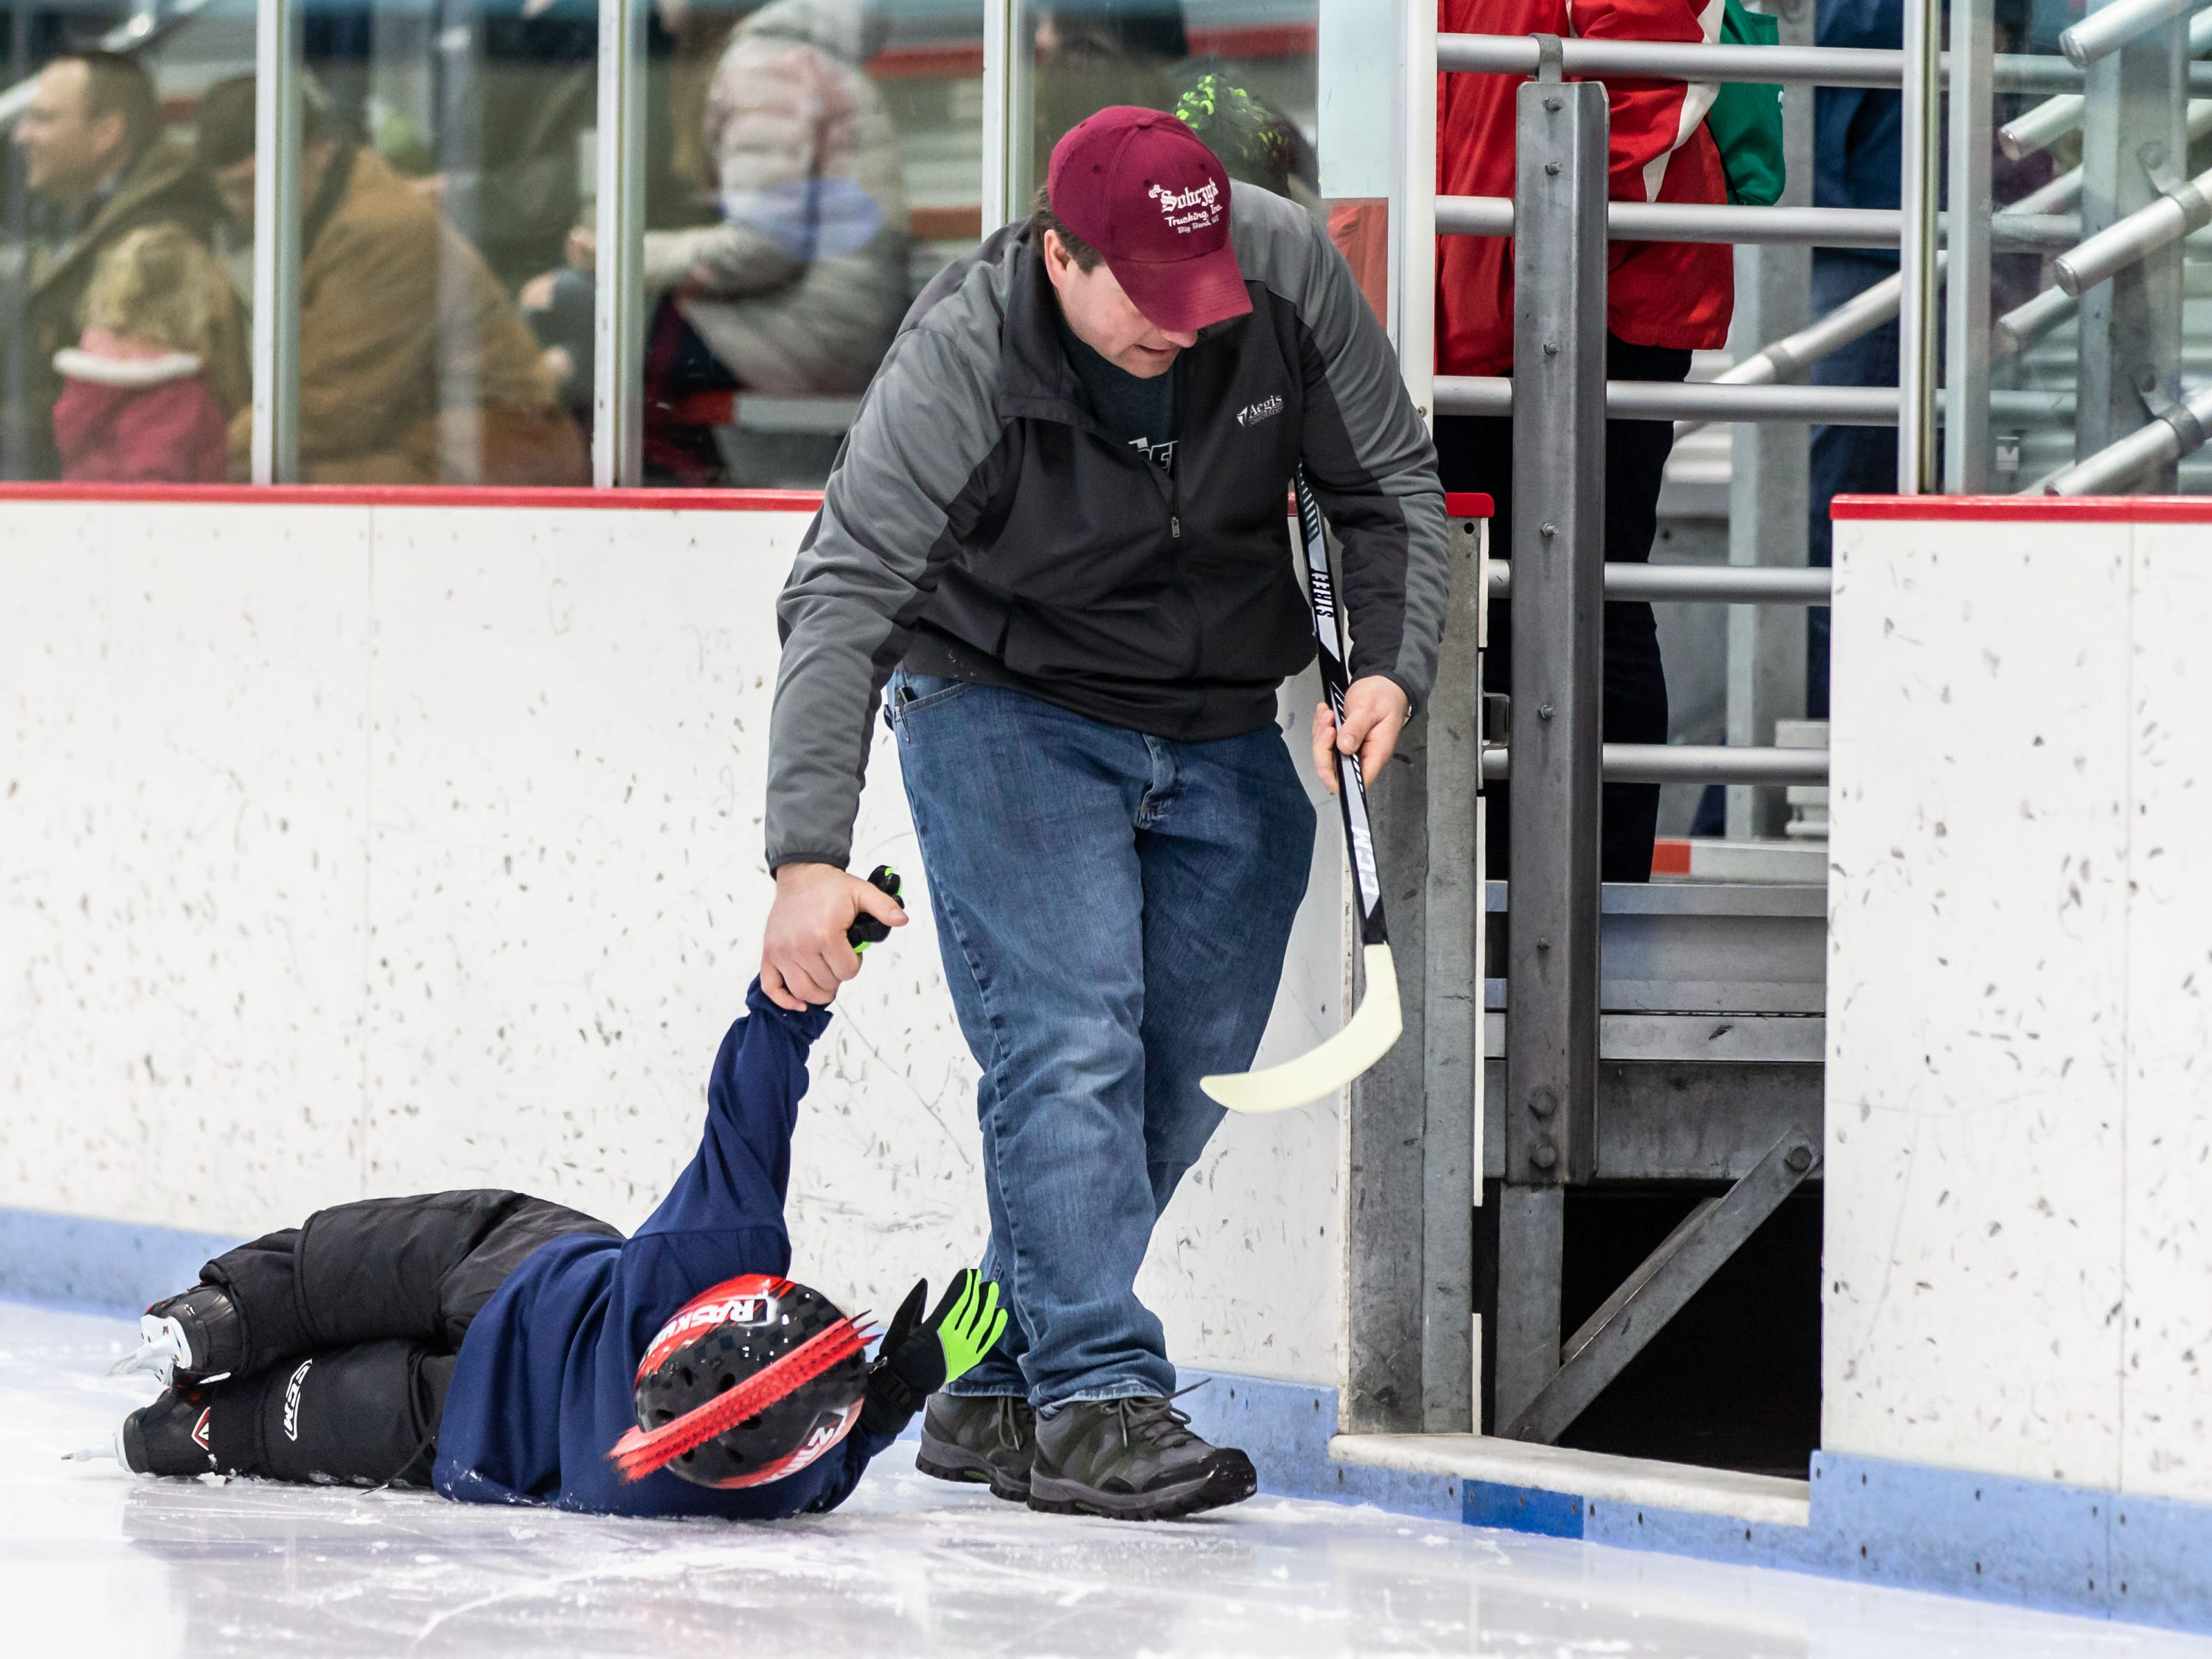 Five-year-old Luke Maduscha of Ixonia runs out of energy and gets a tow by his dad Andy during the Try Hockey For Free Day at the Howard G. Mullett Ice Center in Hartland on Saturday, Feb. 23, 2019.